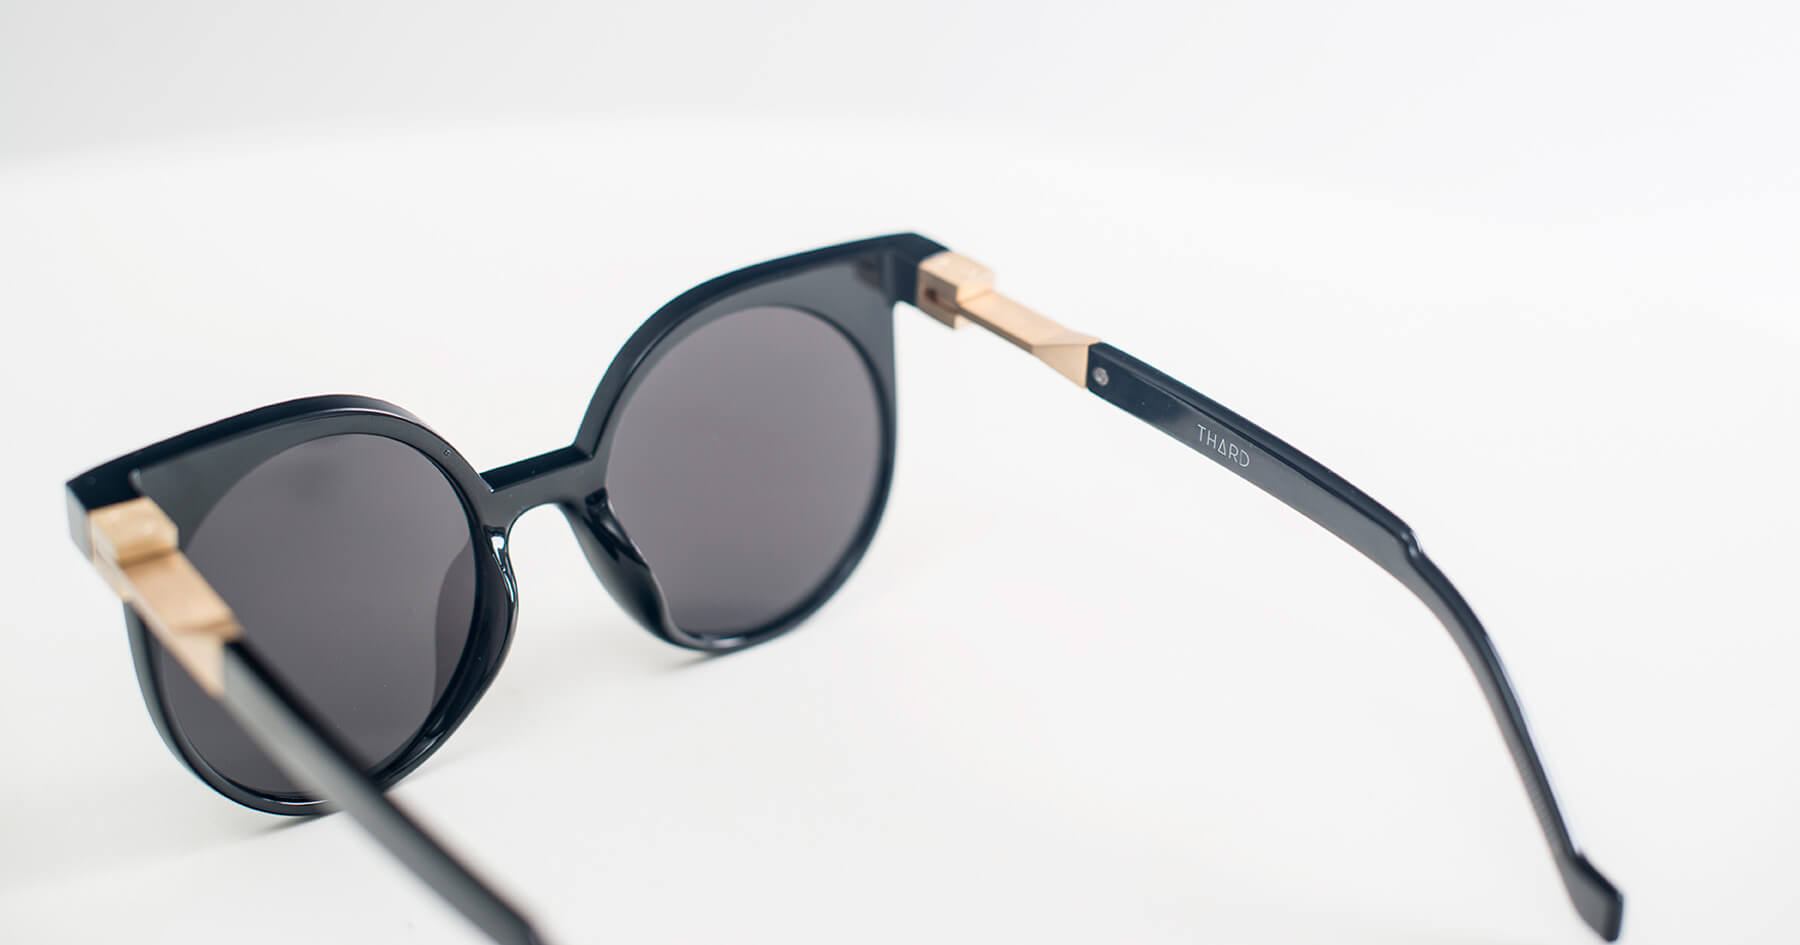 LVBT welcomes Third Eyewear